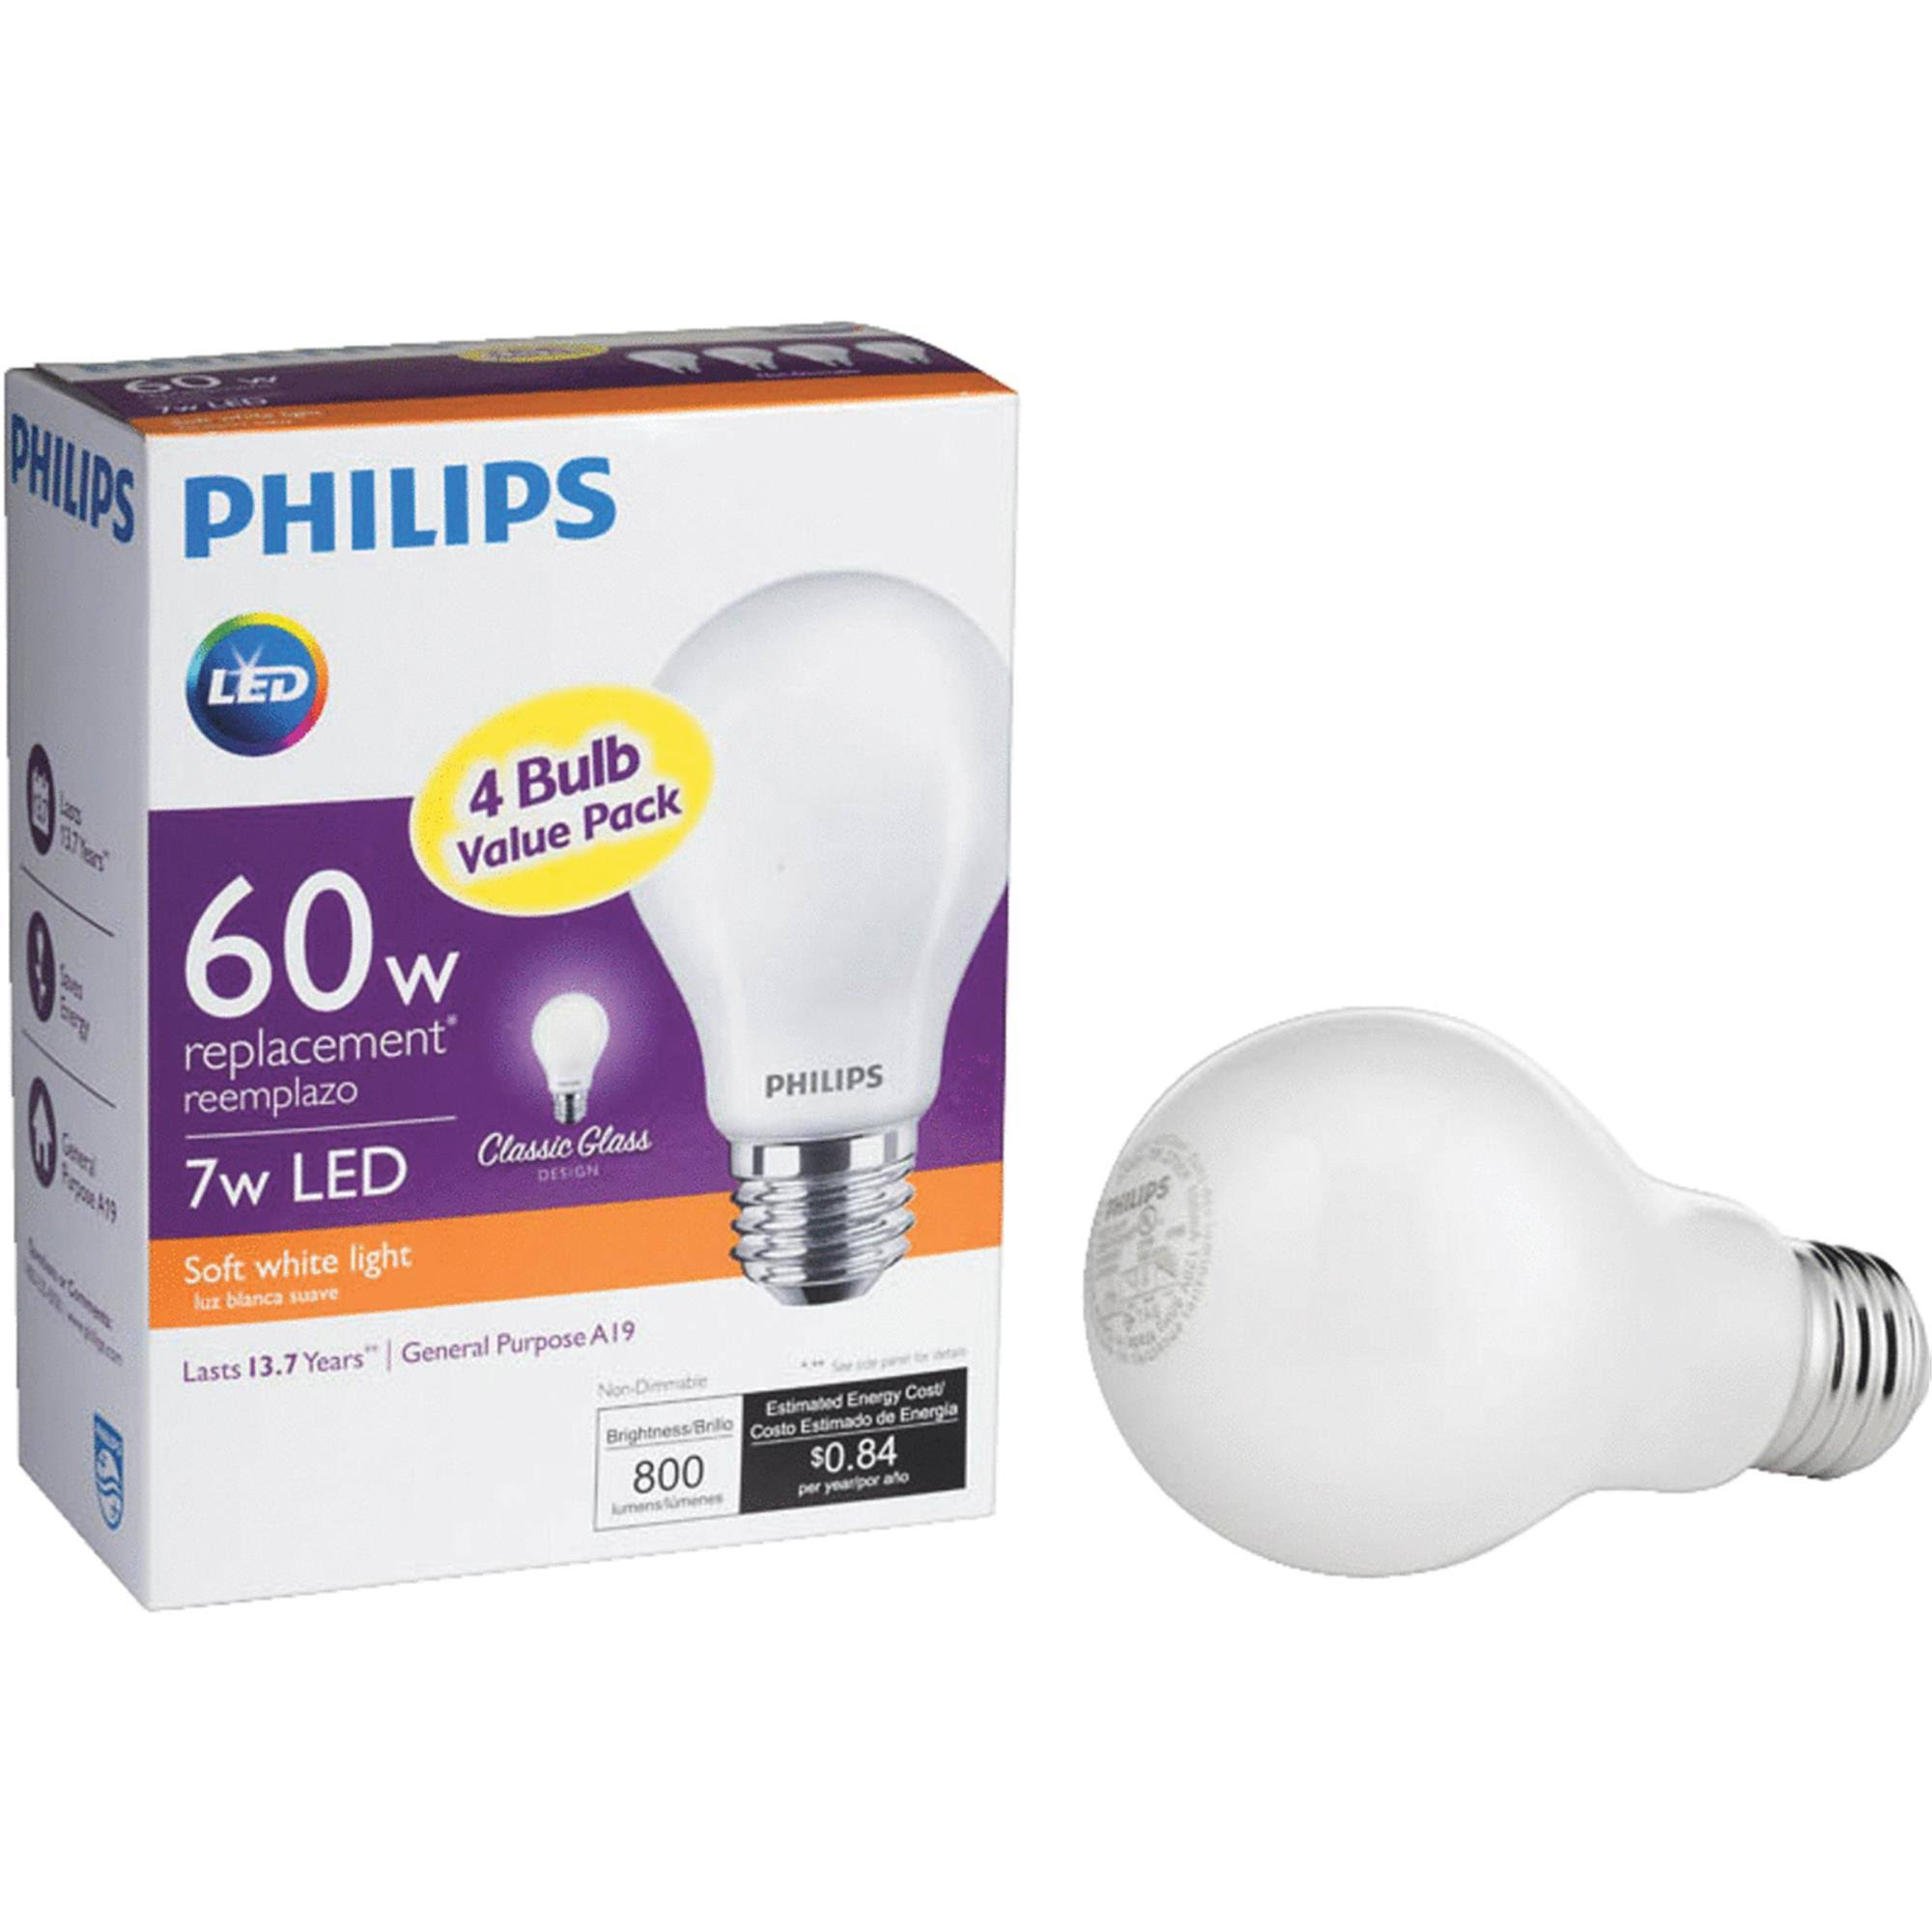 Philips A19 Medium LED Light Bulb - 469817